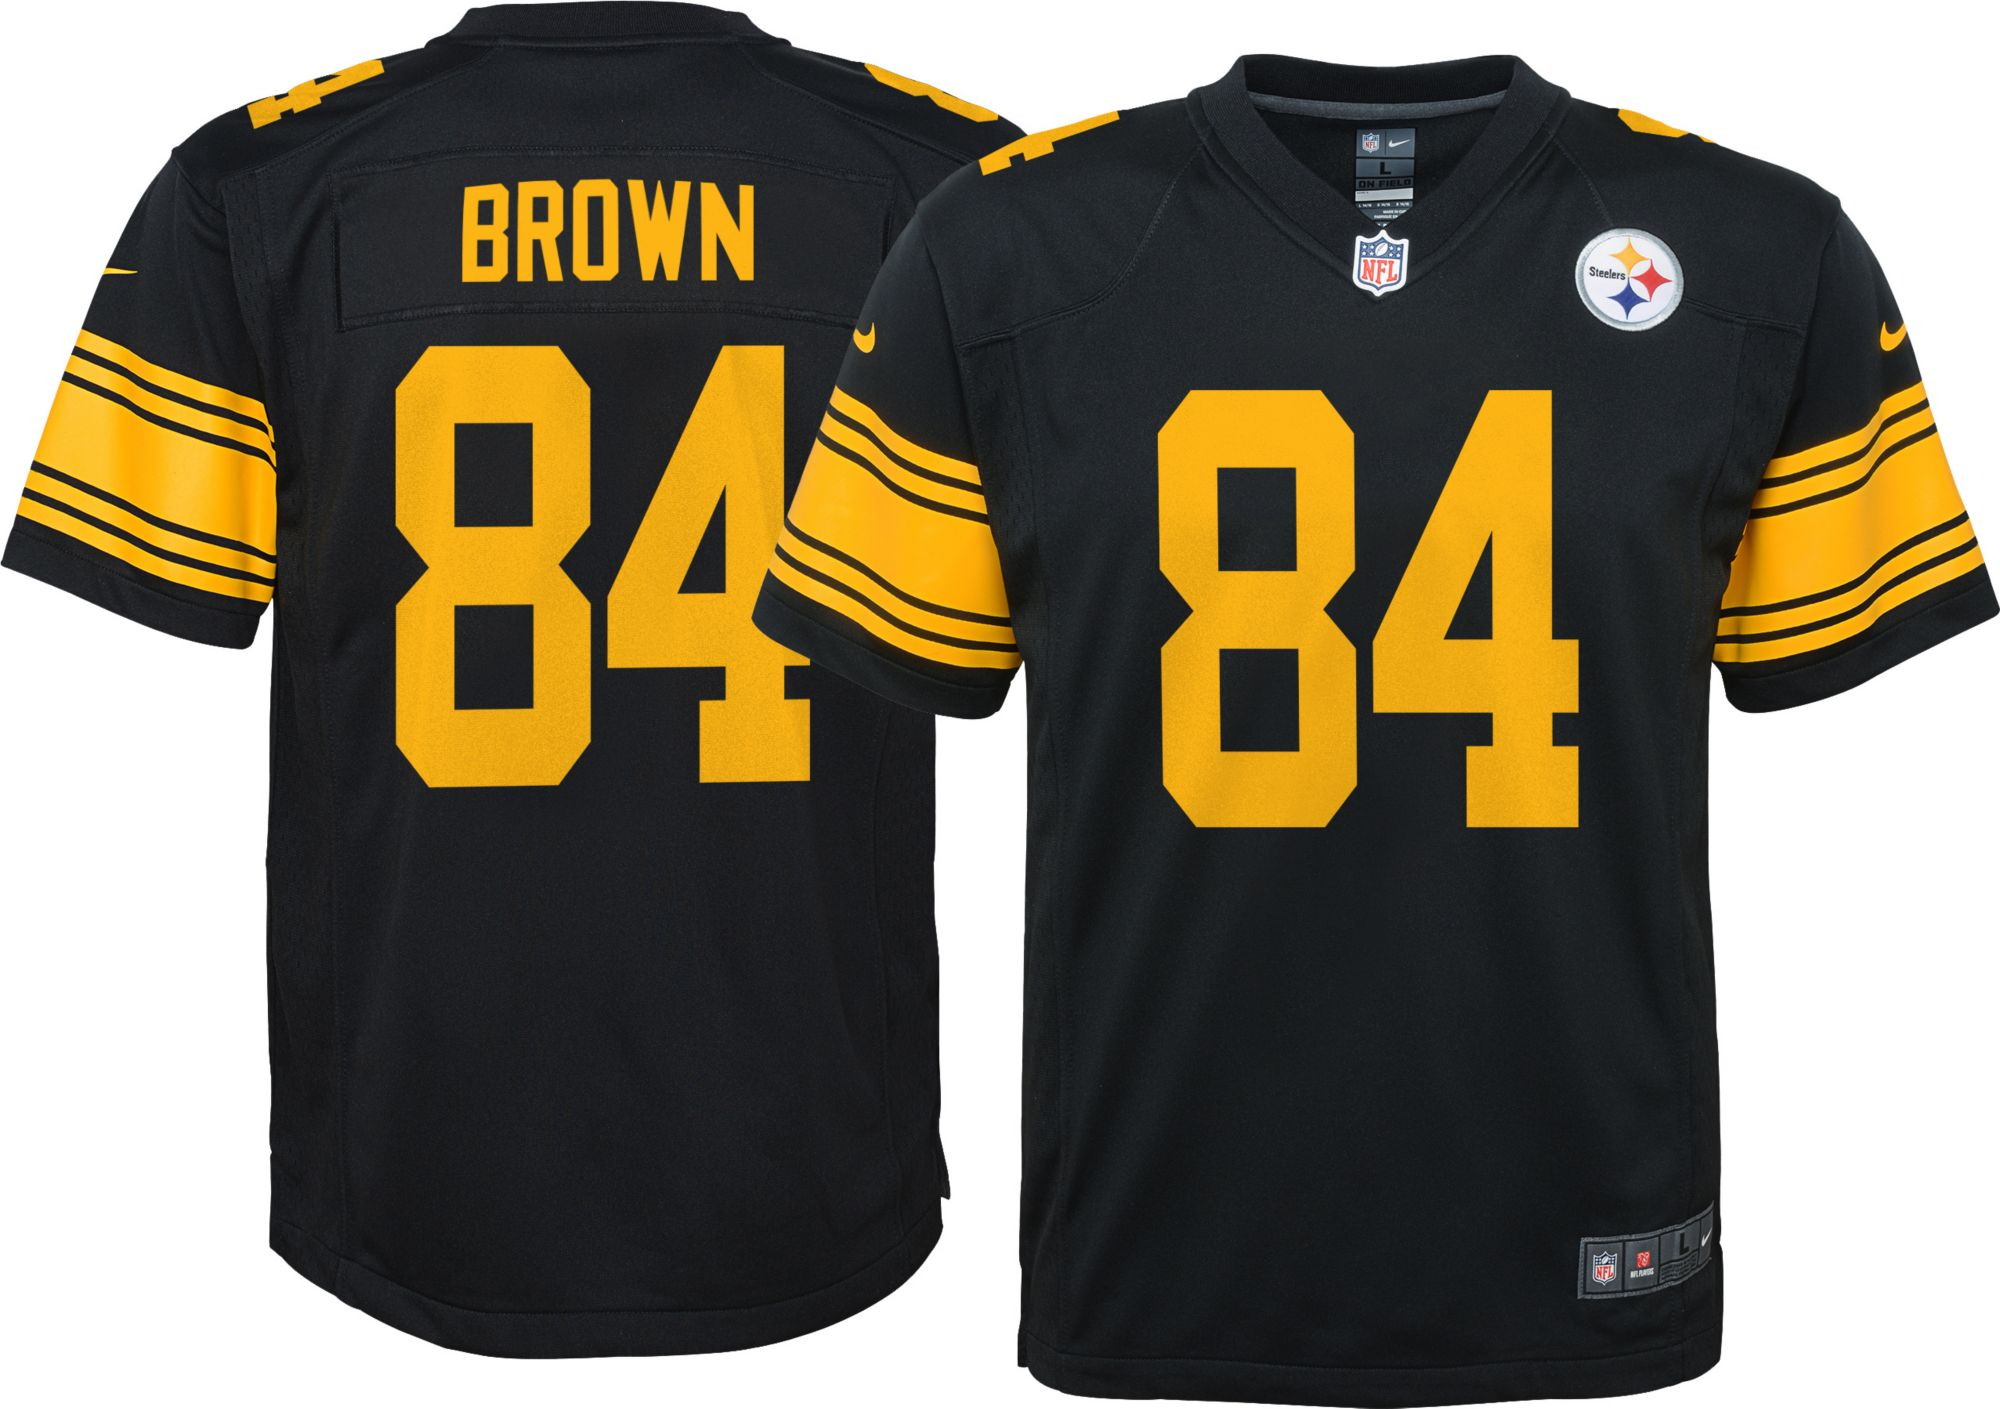 antonio brown t shirt jersey